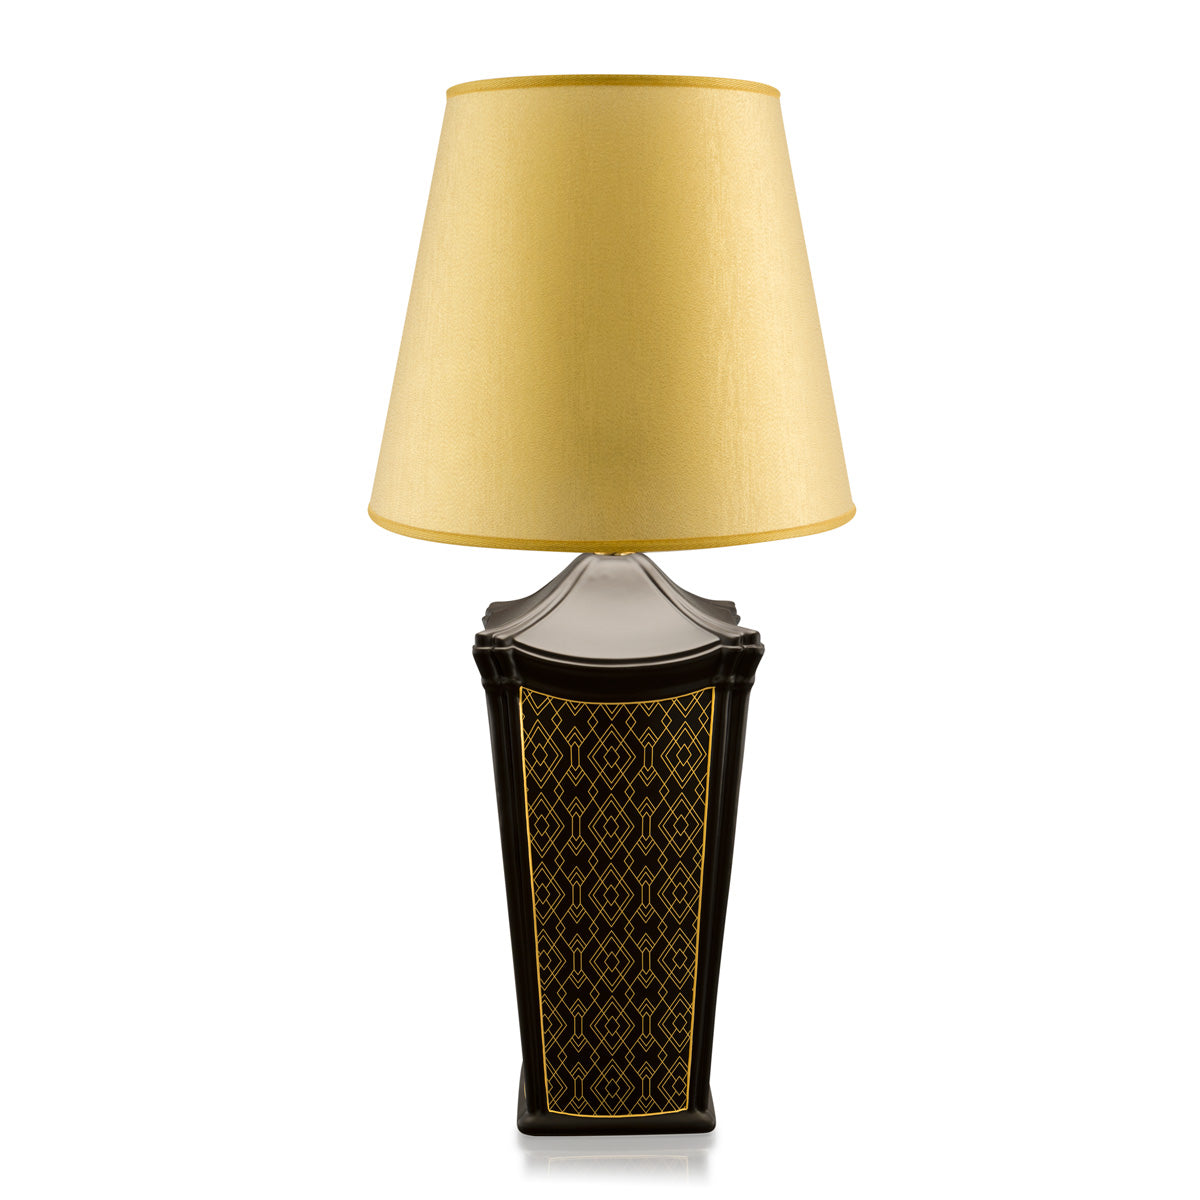 Ceramic square table lamp with gold pattern